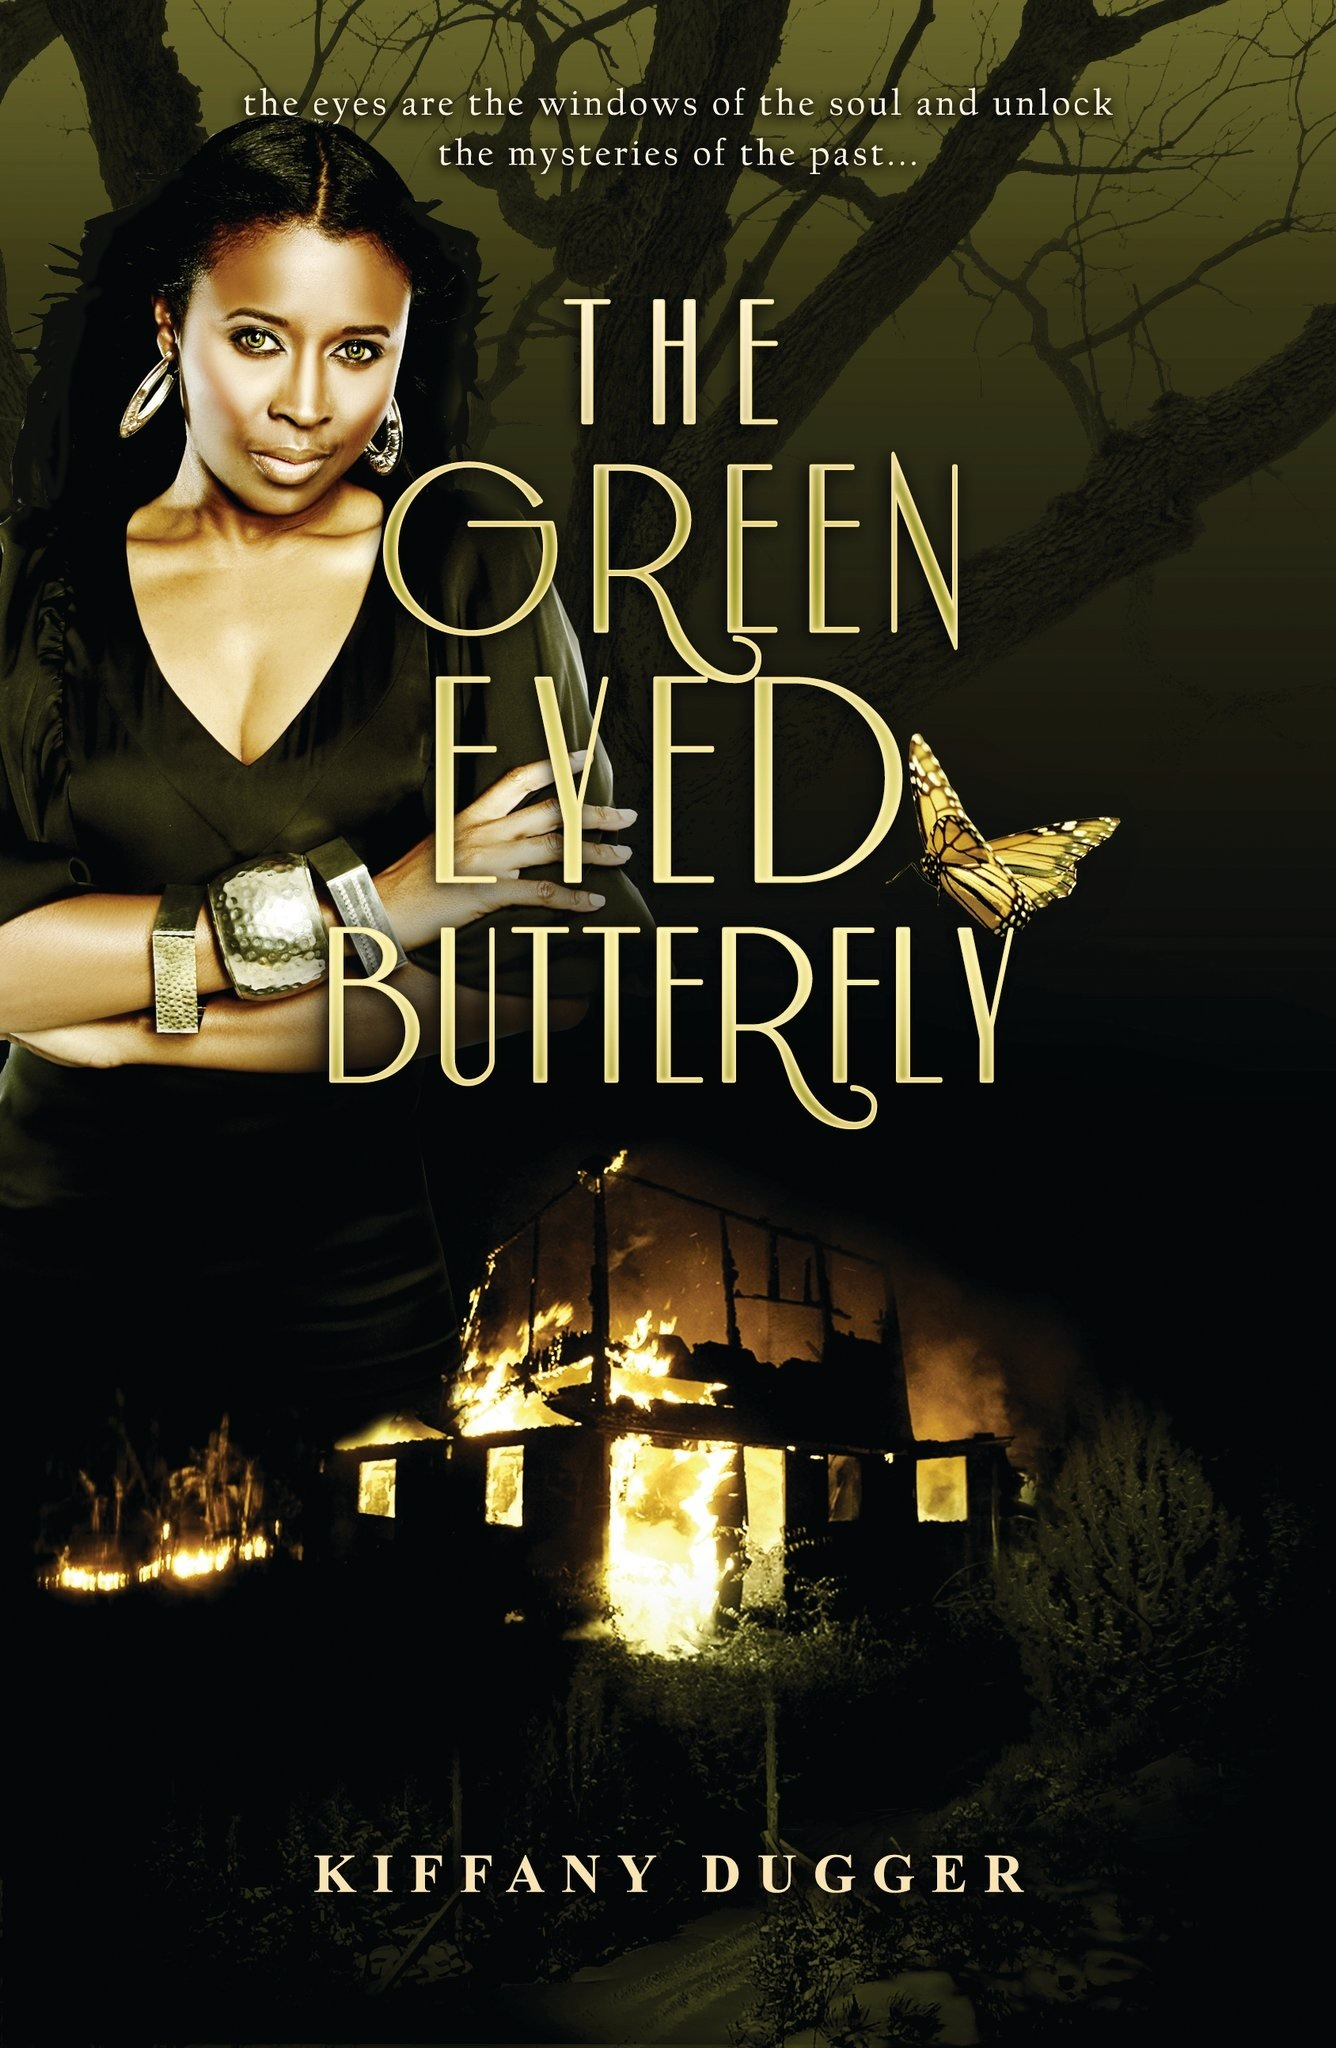 The Green Eyed Butterfly (Book 1 of the Seth St. James Series) SSJBook01